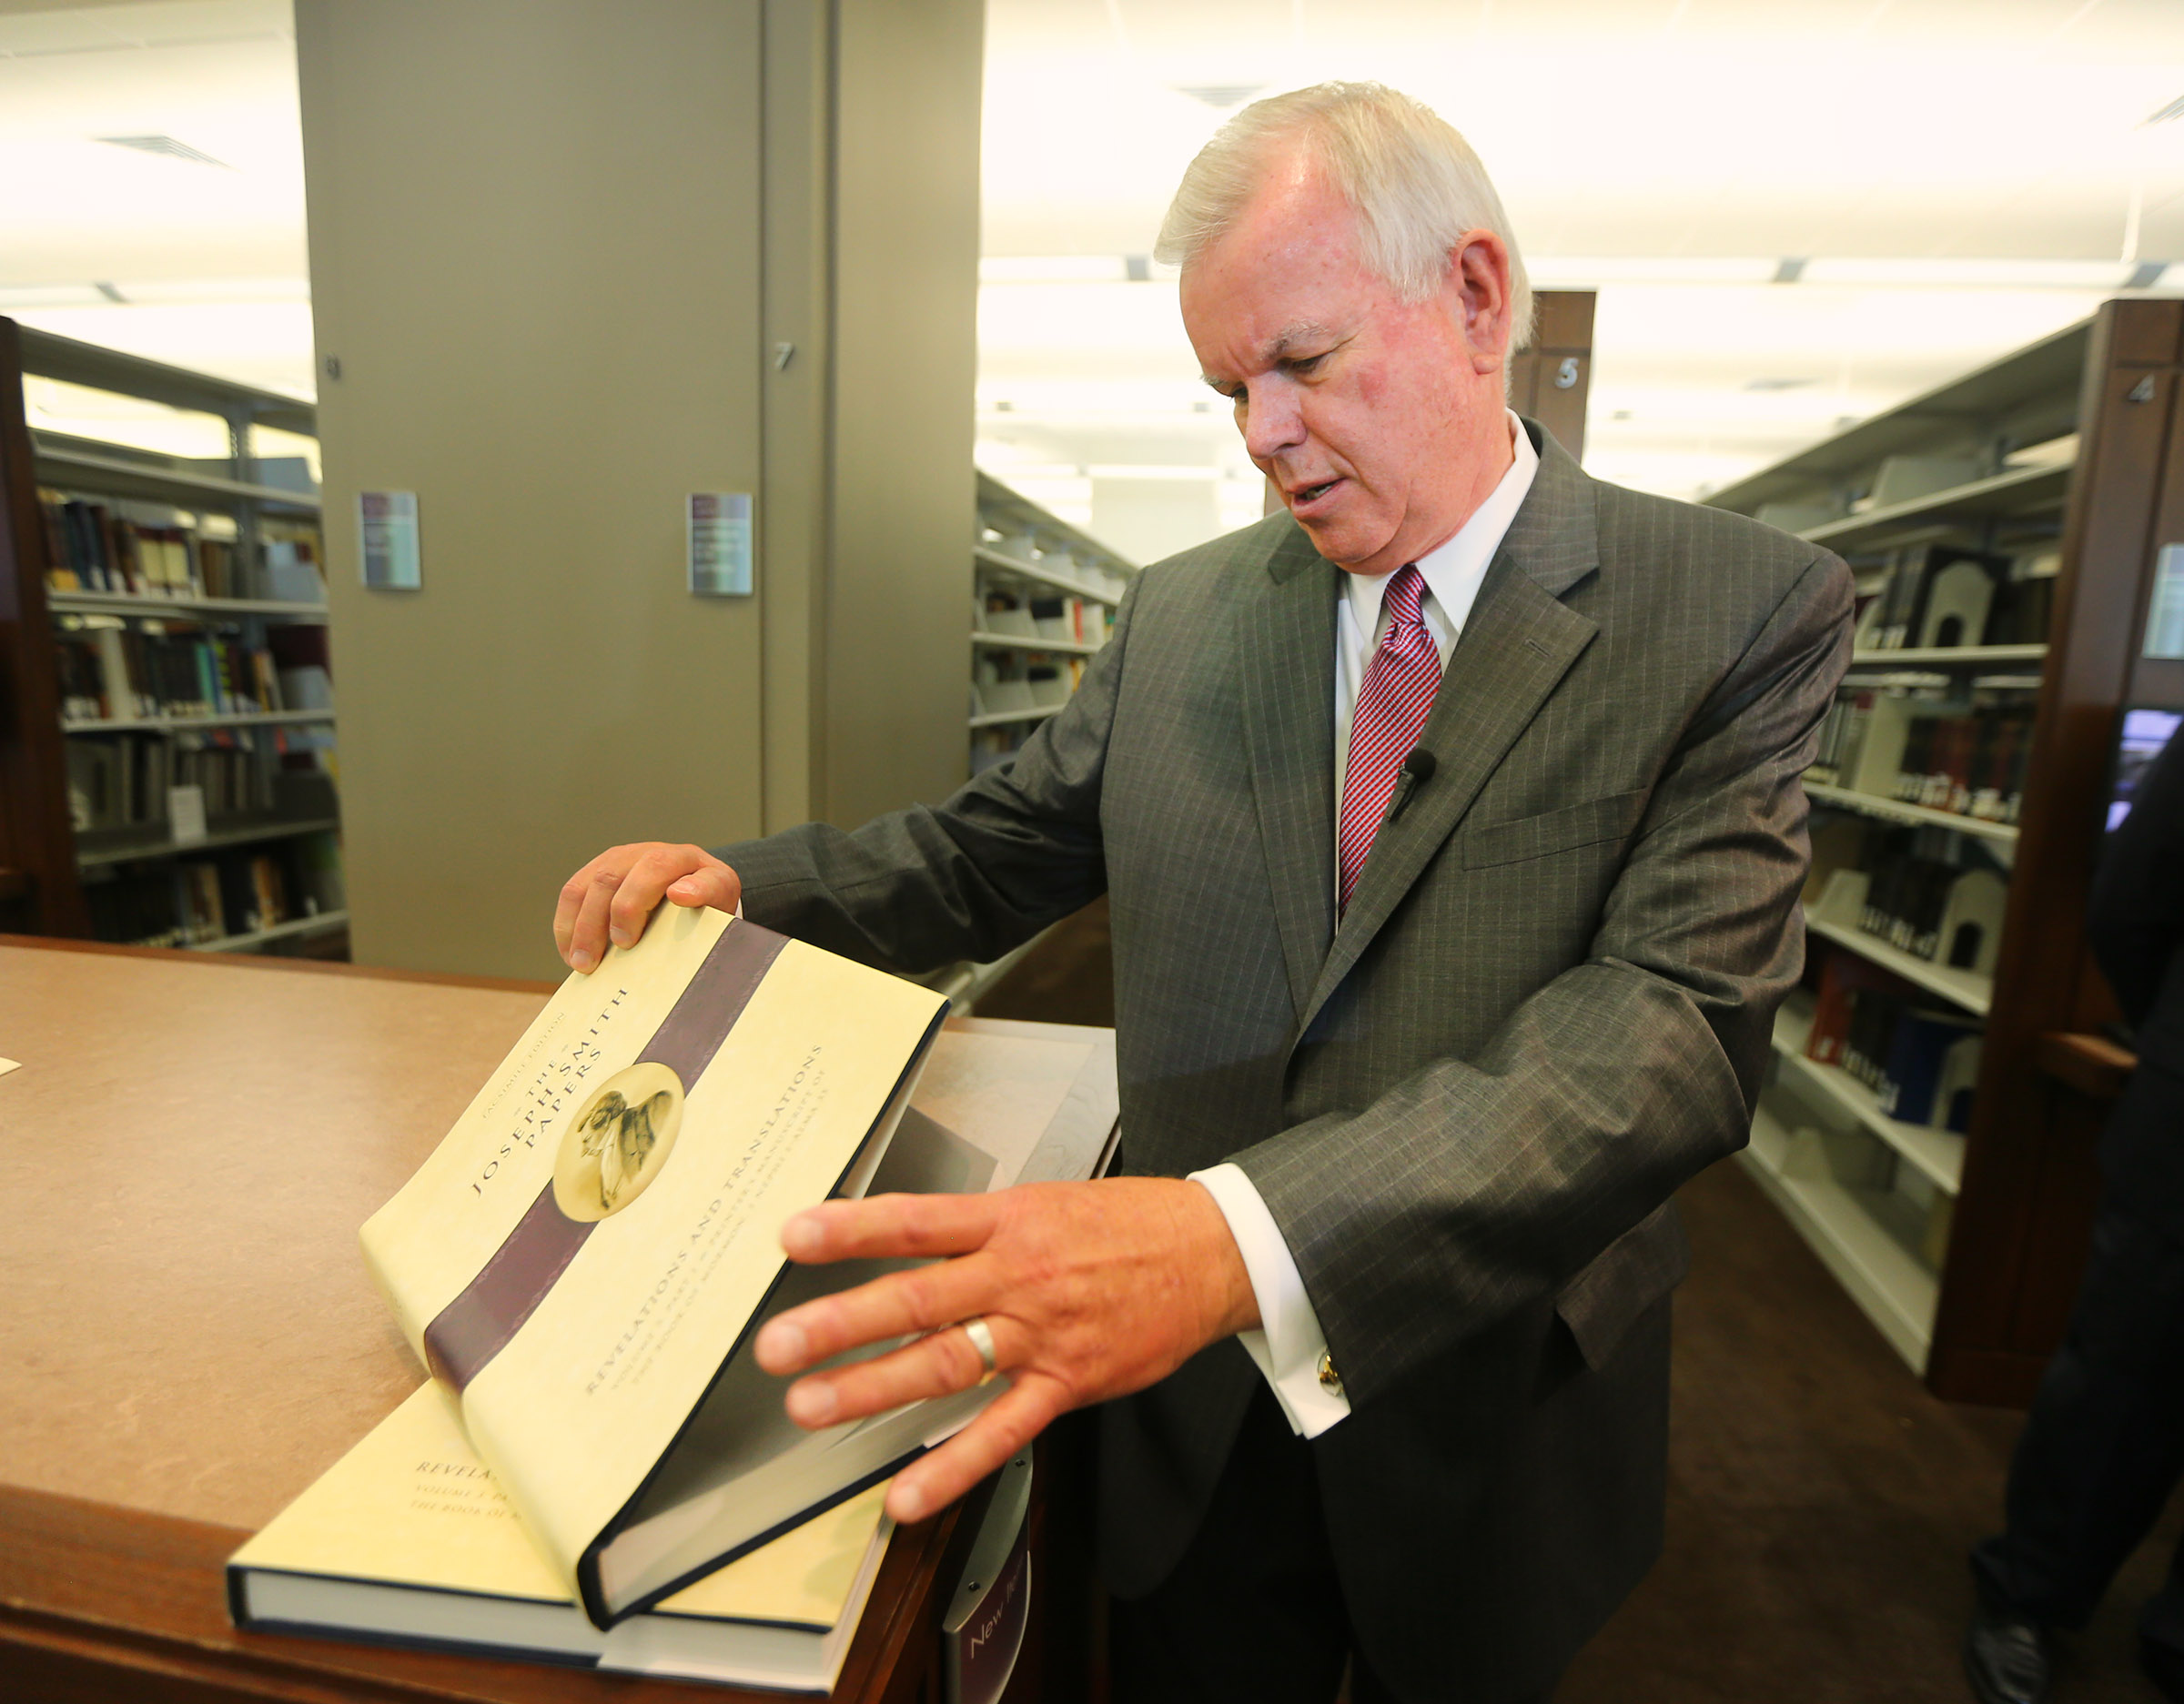 Church Historian and Recorder Elder Steven E. Snow shows a few of the pages of the new volume as The Church of Jesus Christ of Latter-day Saints, in cooperation with the Community of Christ church, announces the release of the printer's manuscript of the Book of Mormon, during a press conference Tuesday, Aug. 4, 2015, at the Church History Library in Salt Lake City.